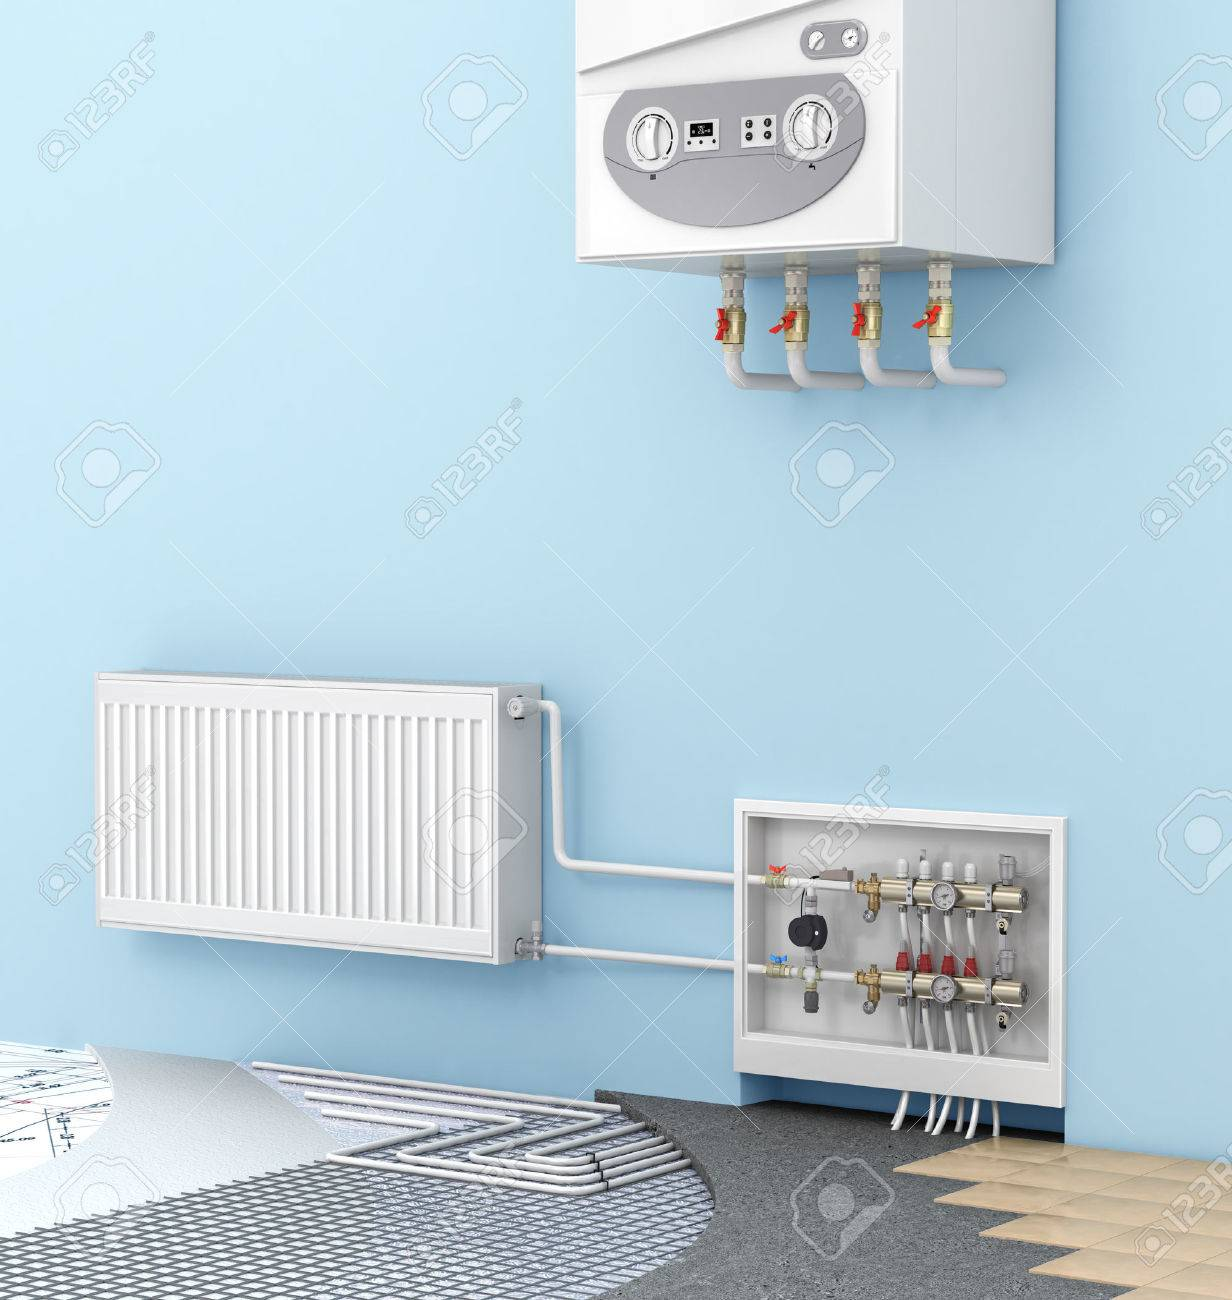 The Concept Of Warm Floor In A Room With A Wall-mounted Boilers ...